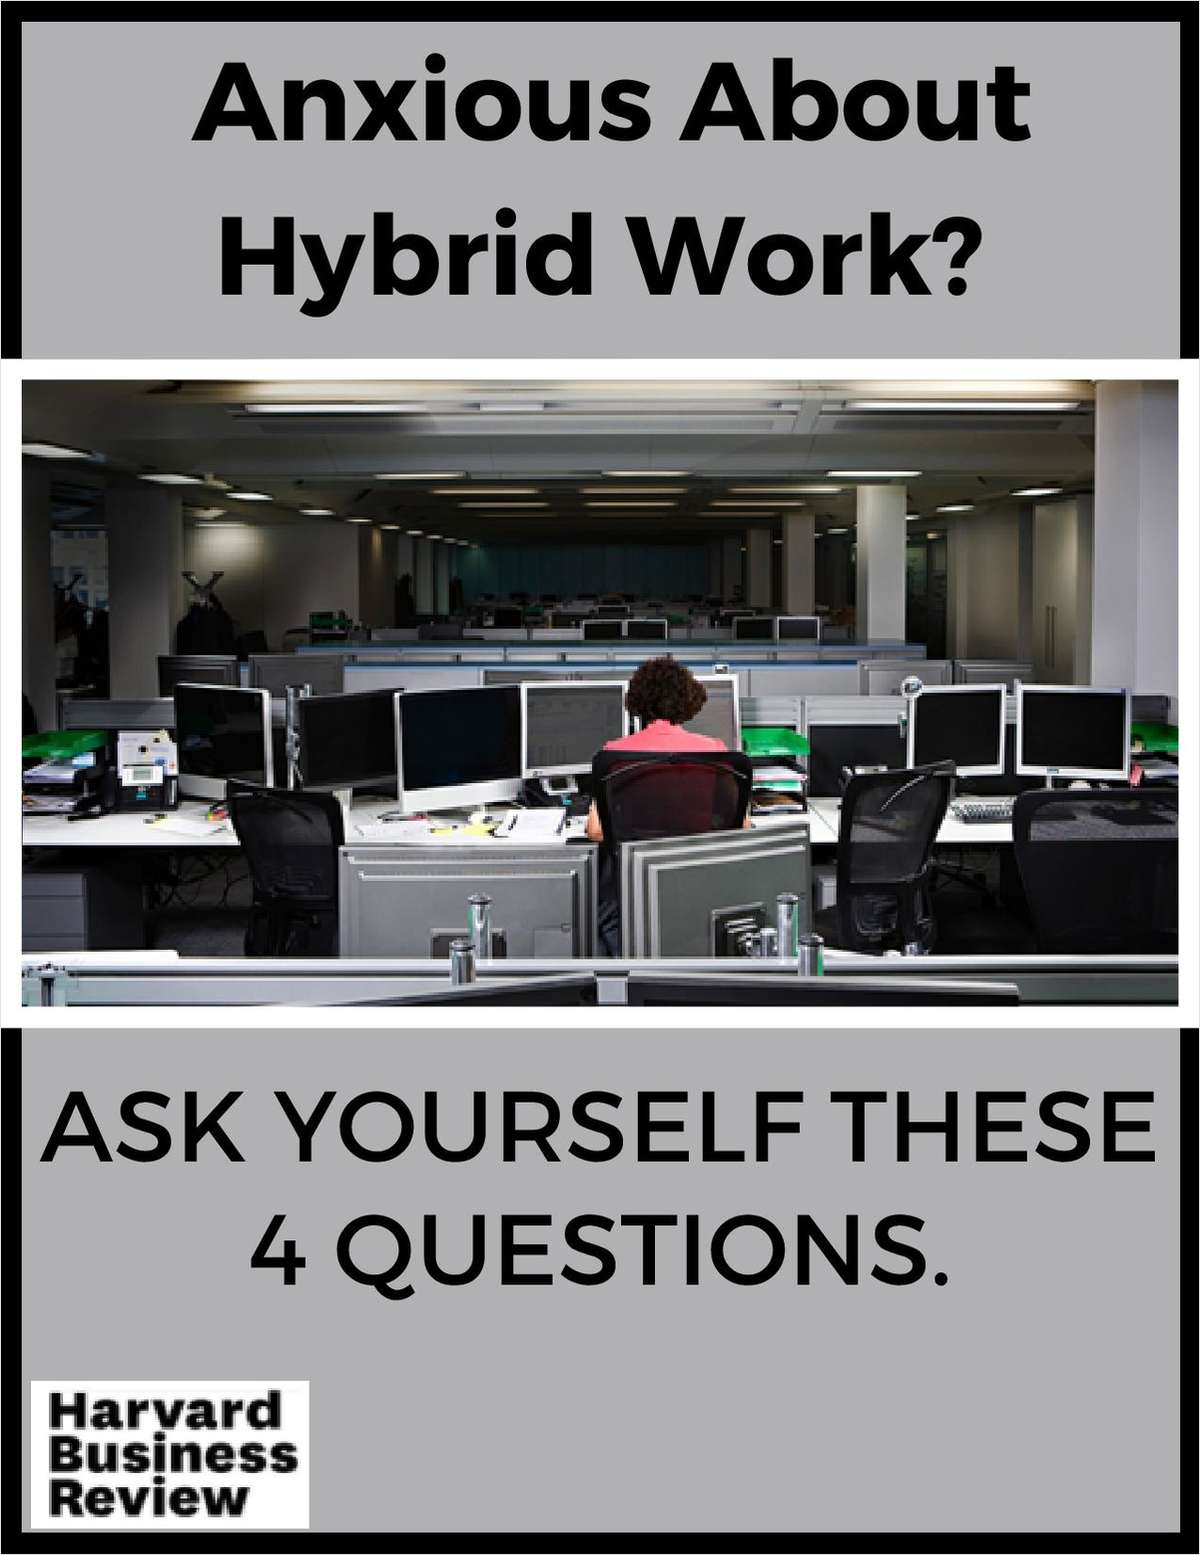 Anxious About Hybrid Work? Ask Yourself These 4 Questions.